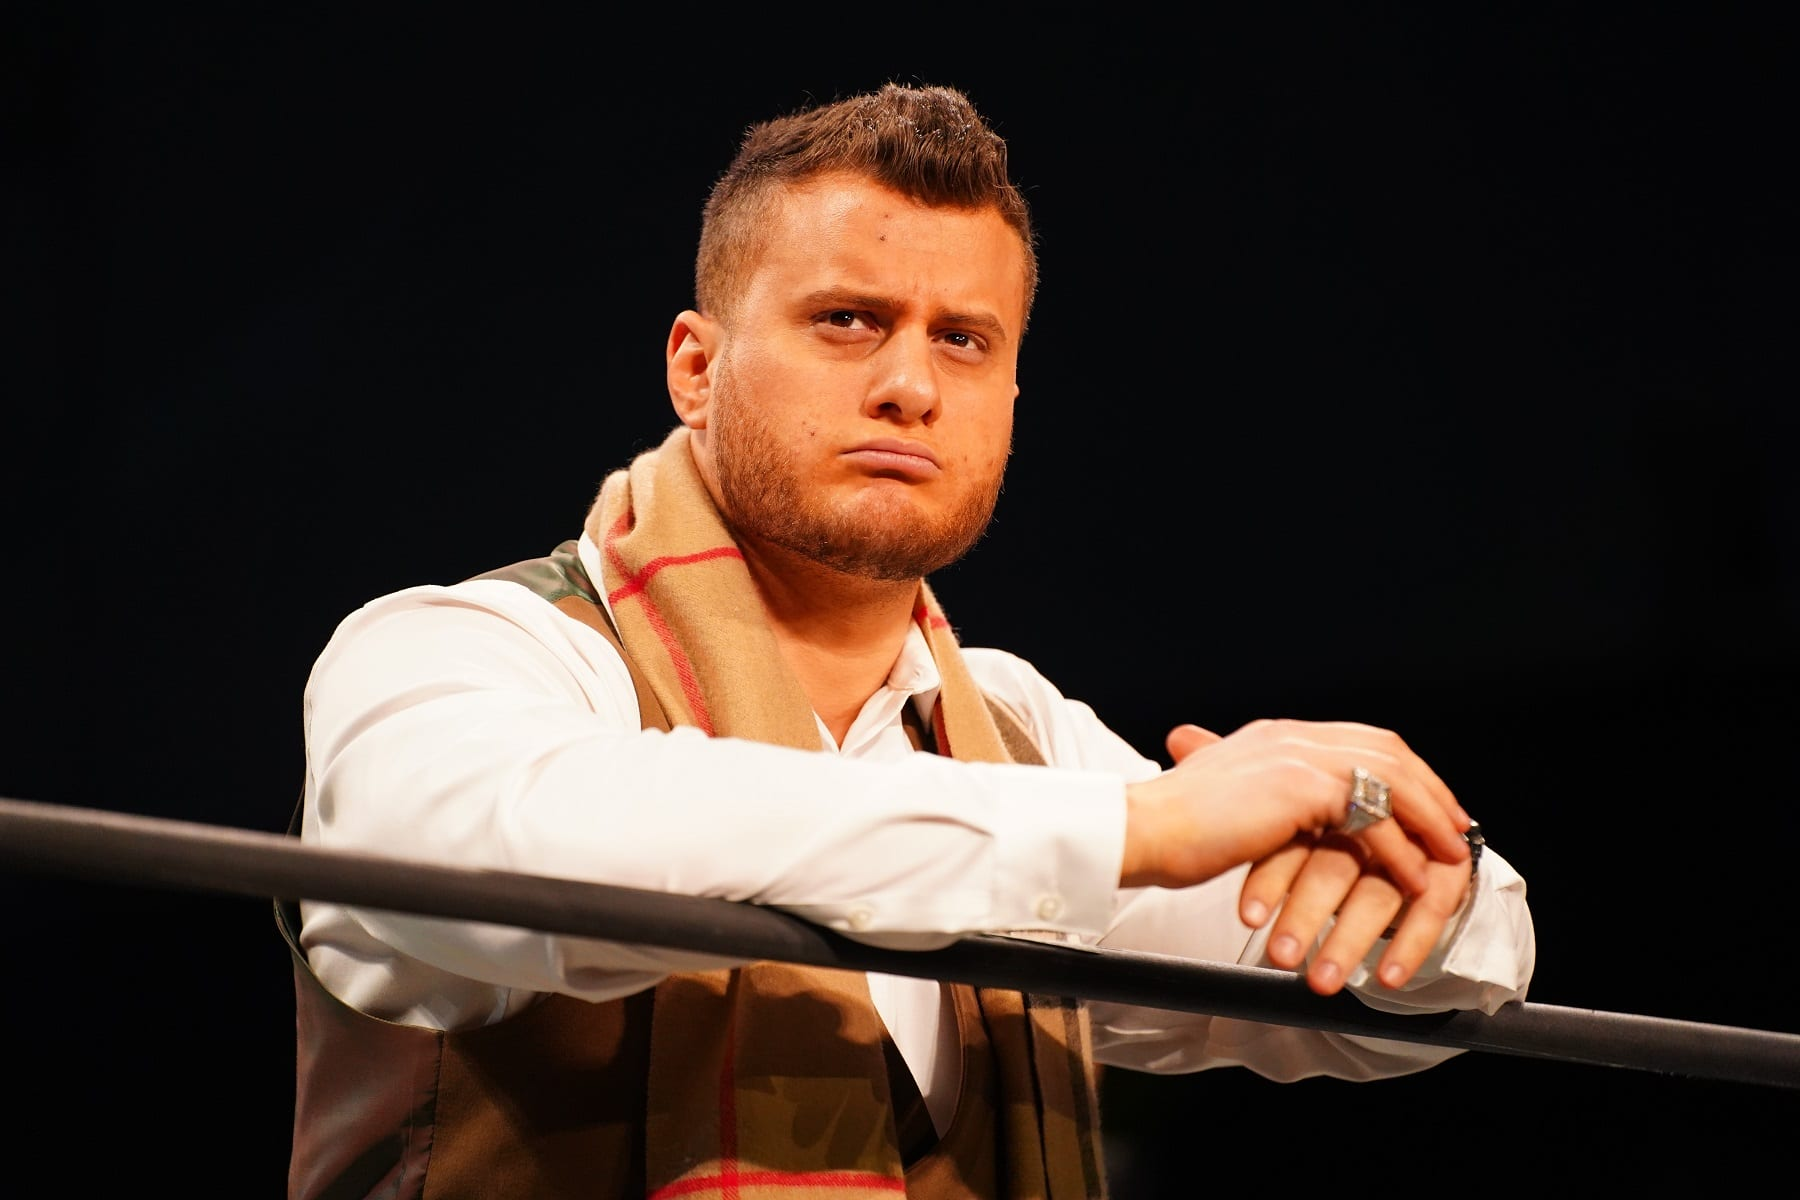 """MJF On Options After AEW Contract Expires: """"I Am A Businessman At The End Of The Day"""""""